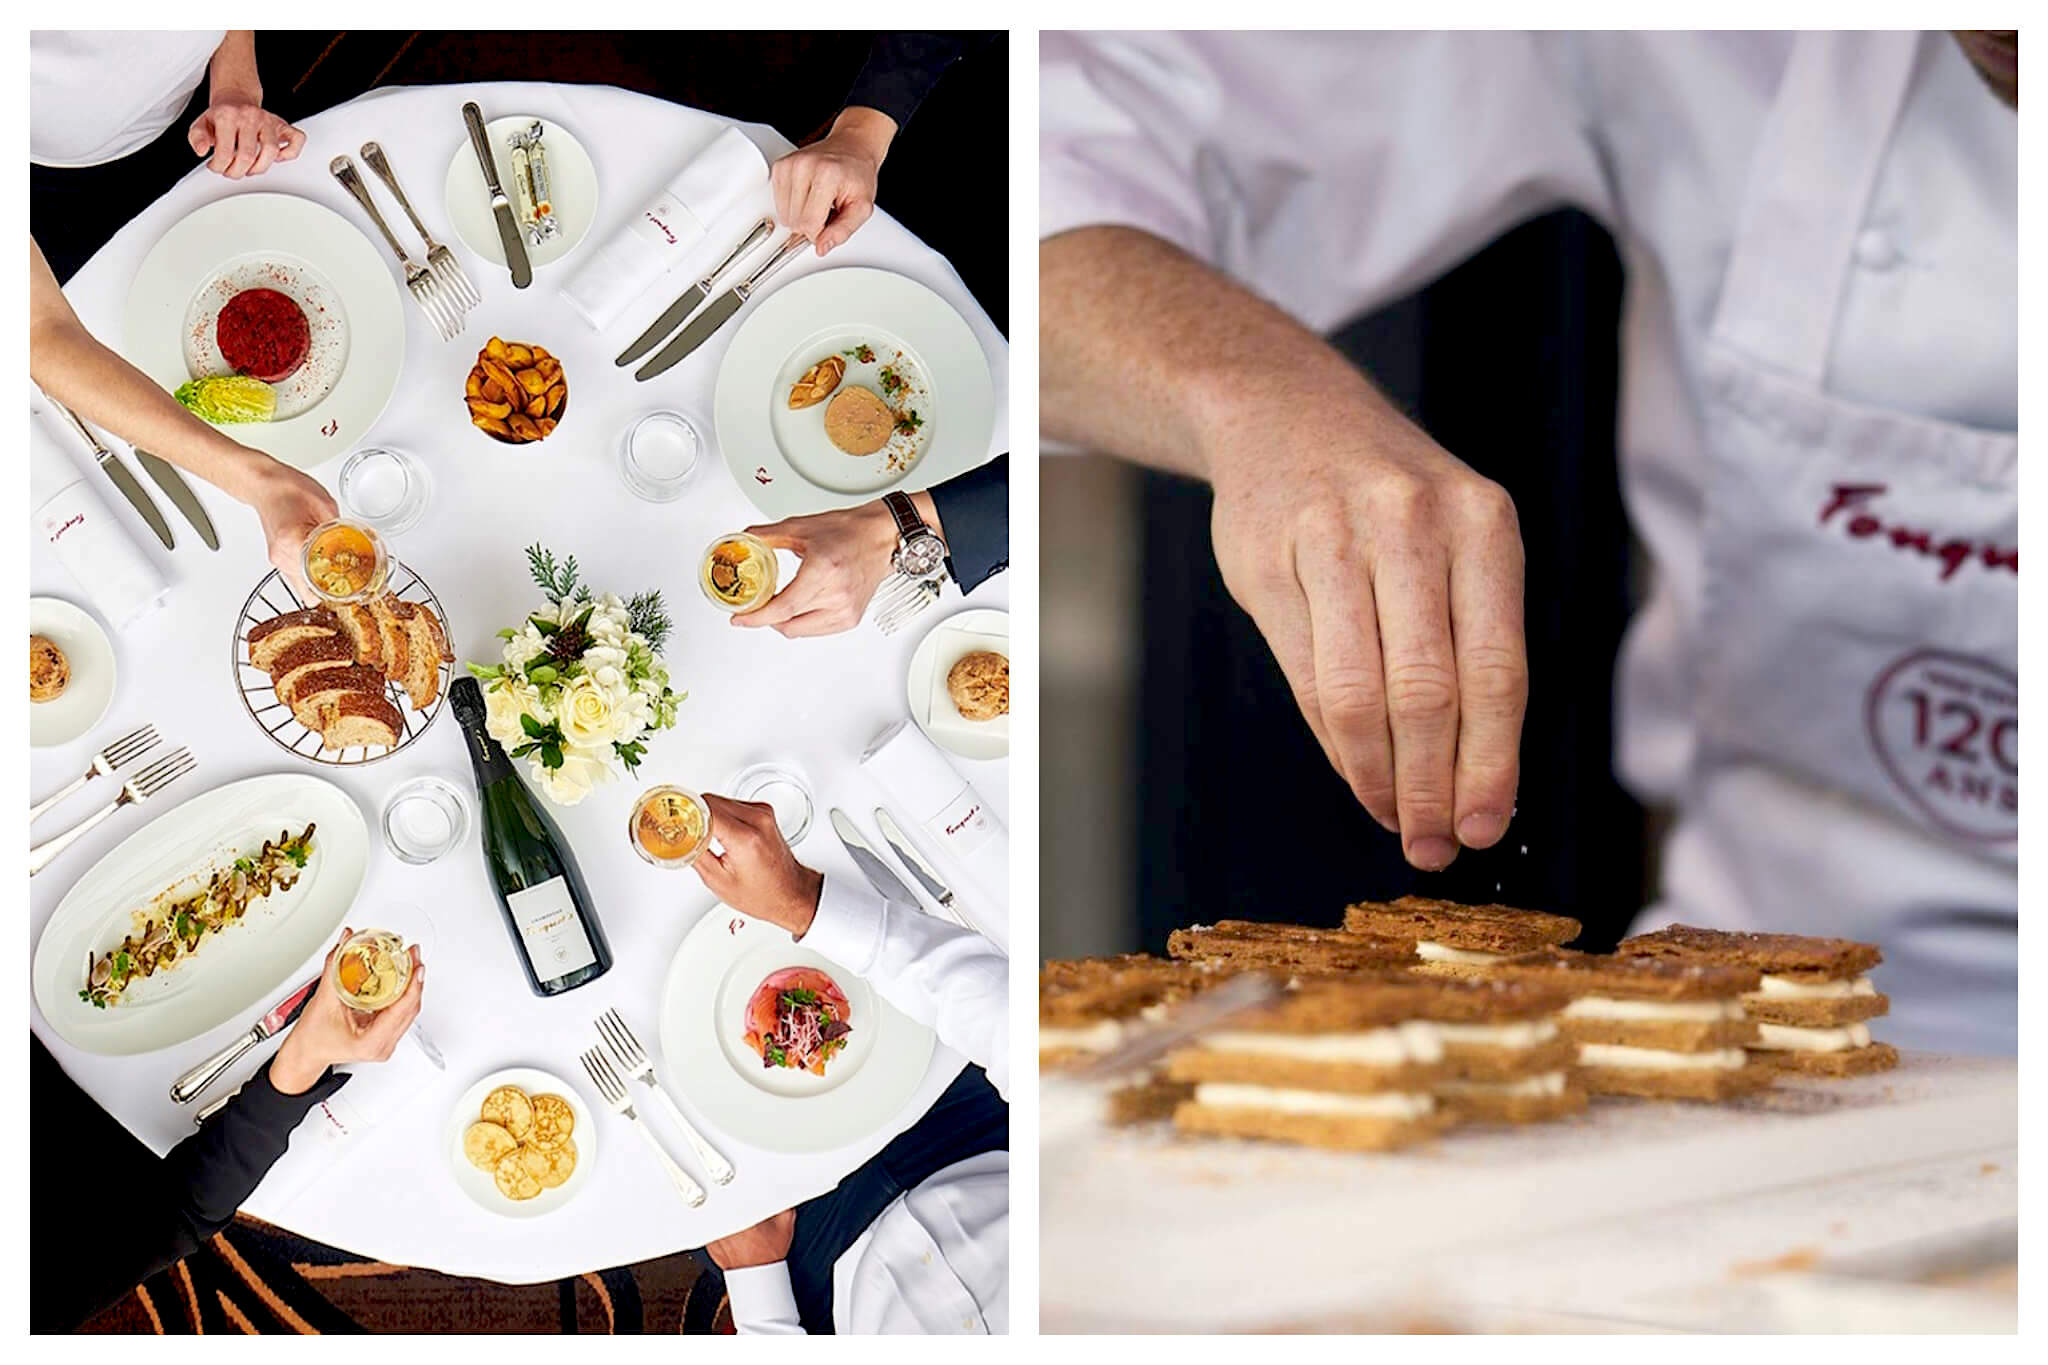 Left: An overhead shot of a group of people sharing a meal at Fouquet's in Paris. On the table are various plates of food, an arrangement of flowers, silverware and a bottle and glasses of wine, Right: A pastry chef at Fouquet's restaurant sprinkles an unidentifiable food atop pastries.